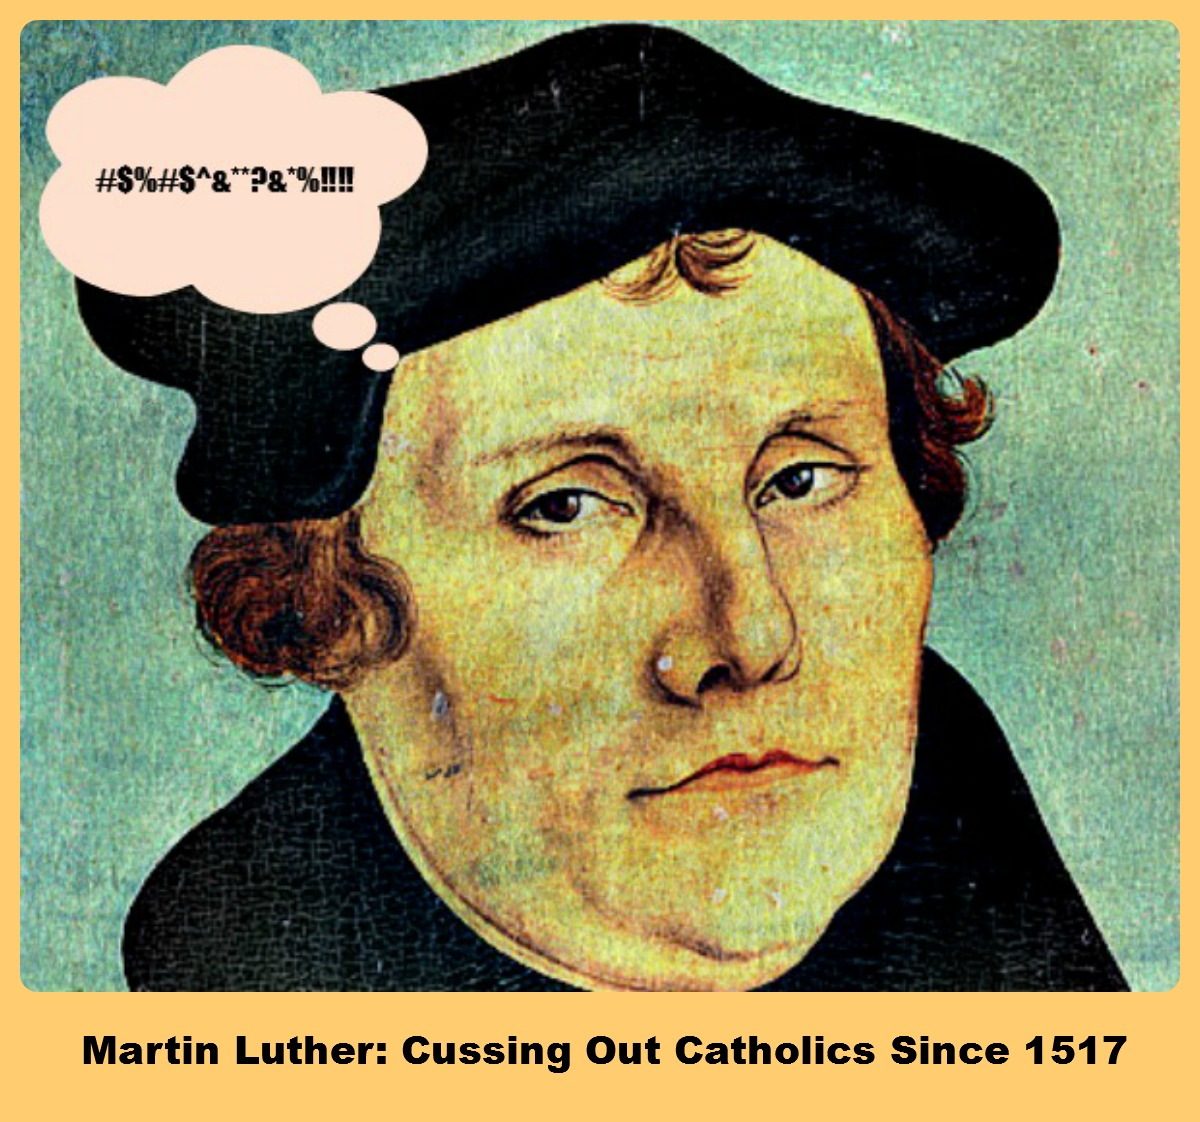 Cursing in the Renaissance: Martin Luther Shows the Way